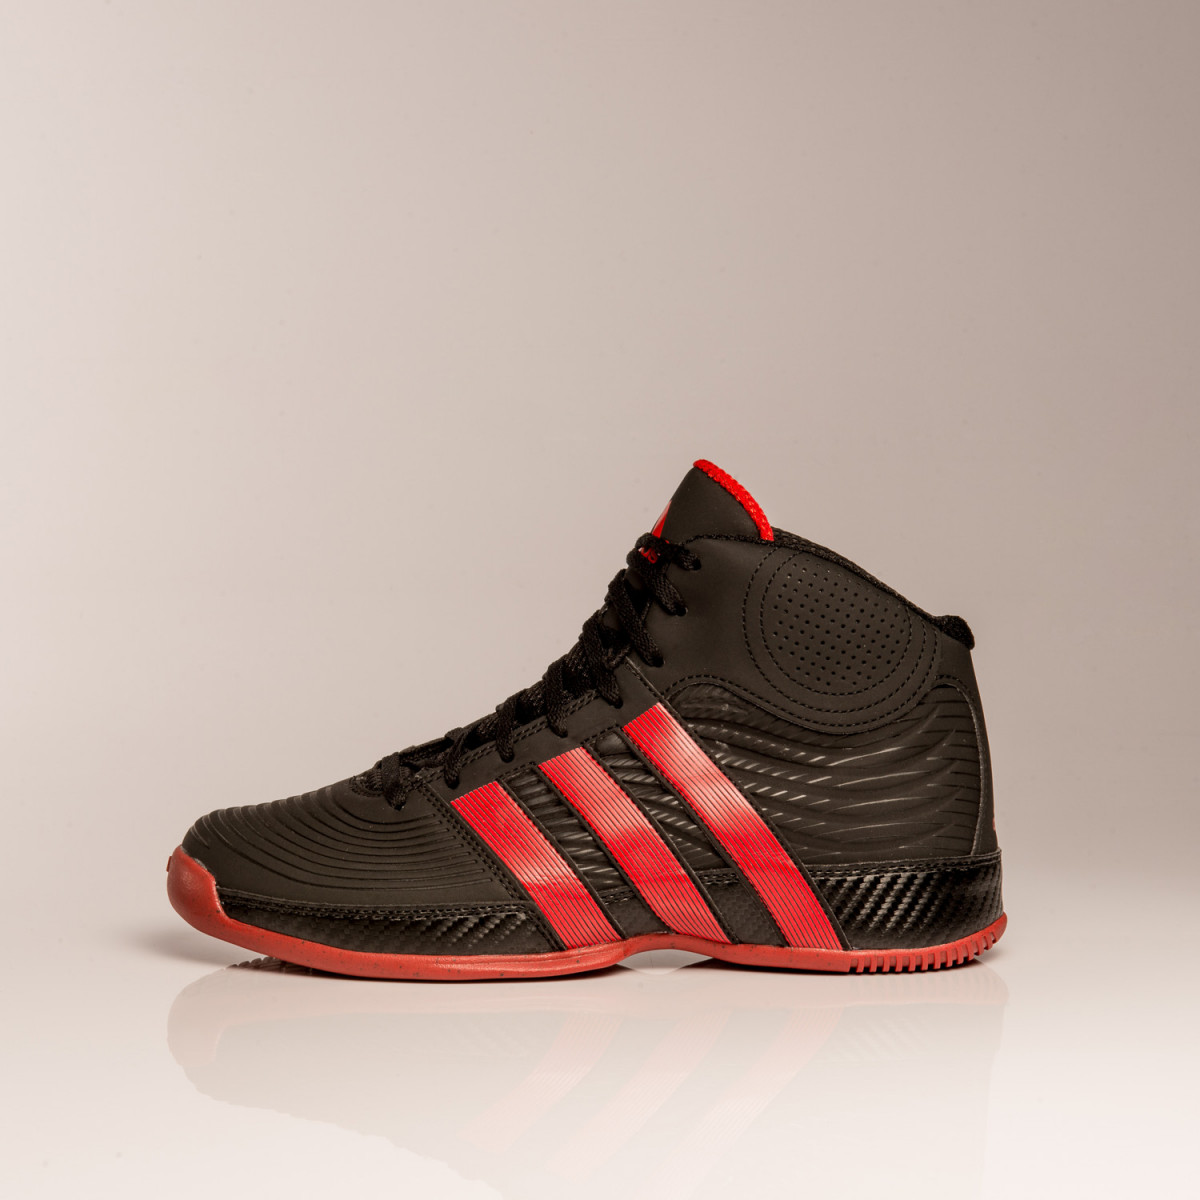 ZAPATILLAS ADIDAS COMMANDER TD